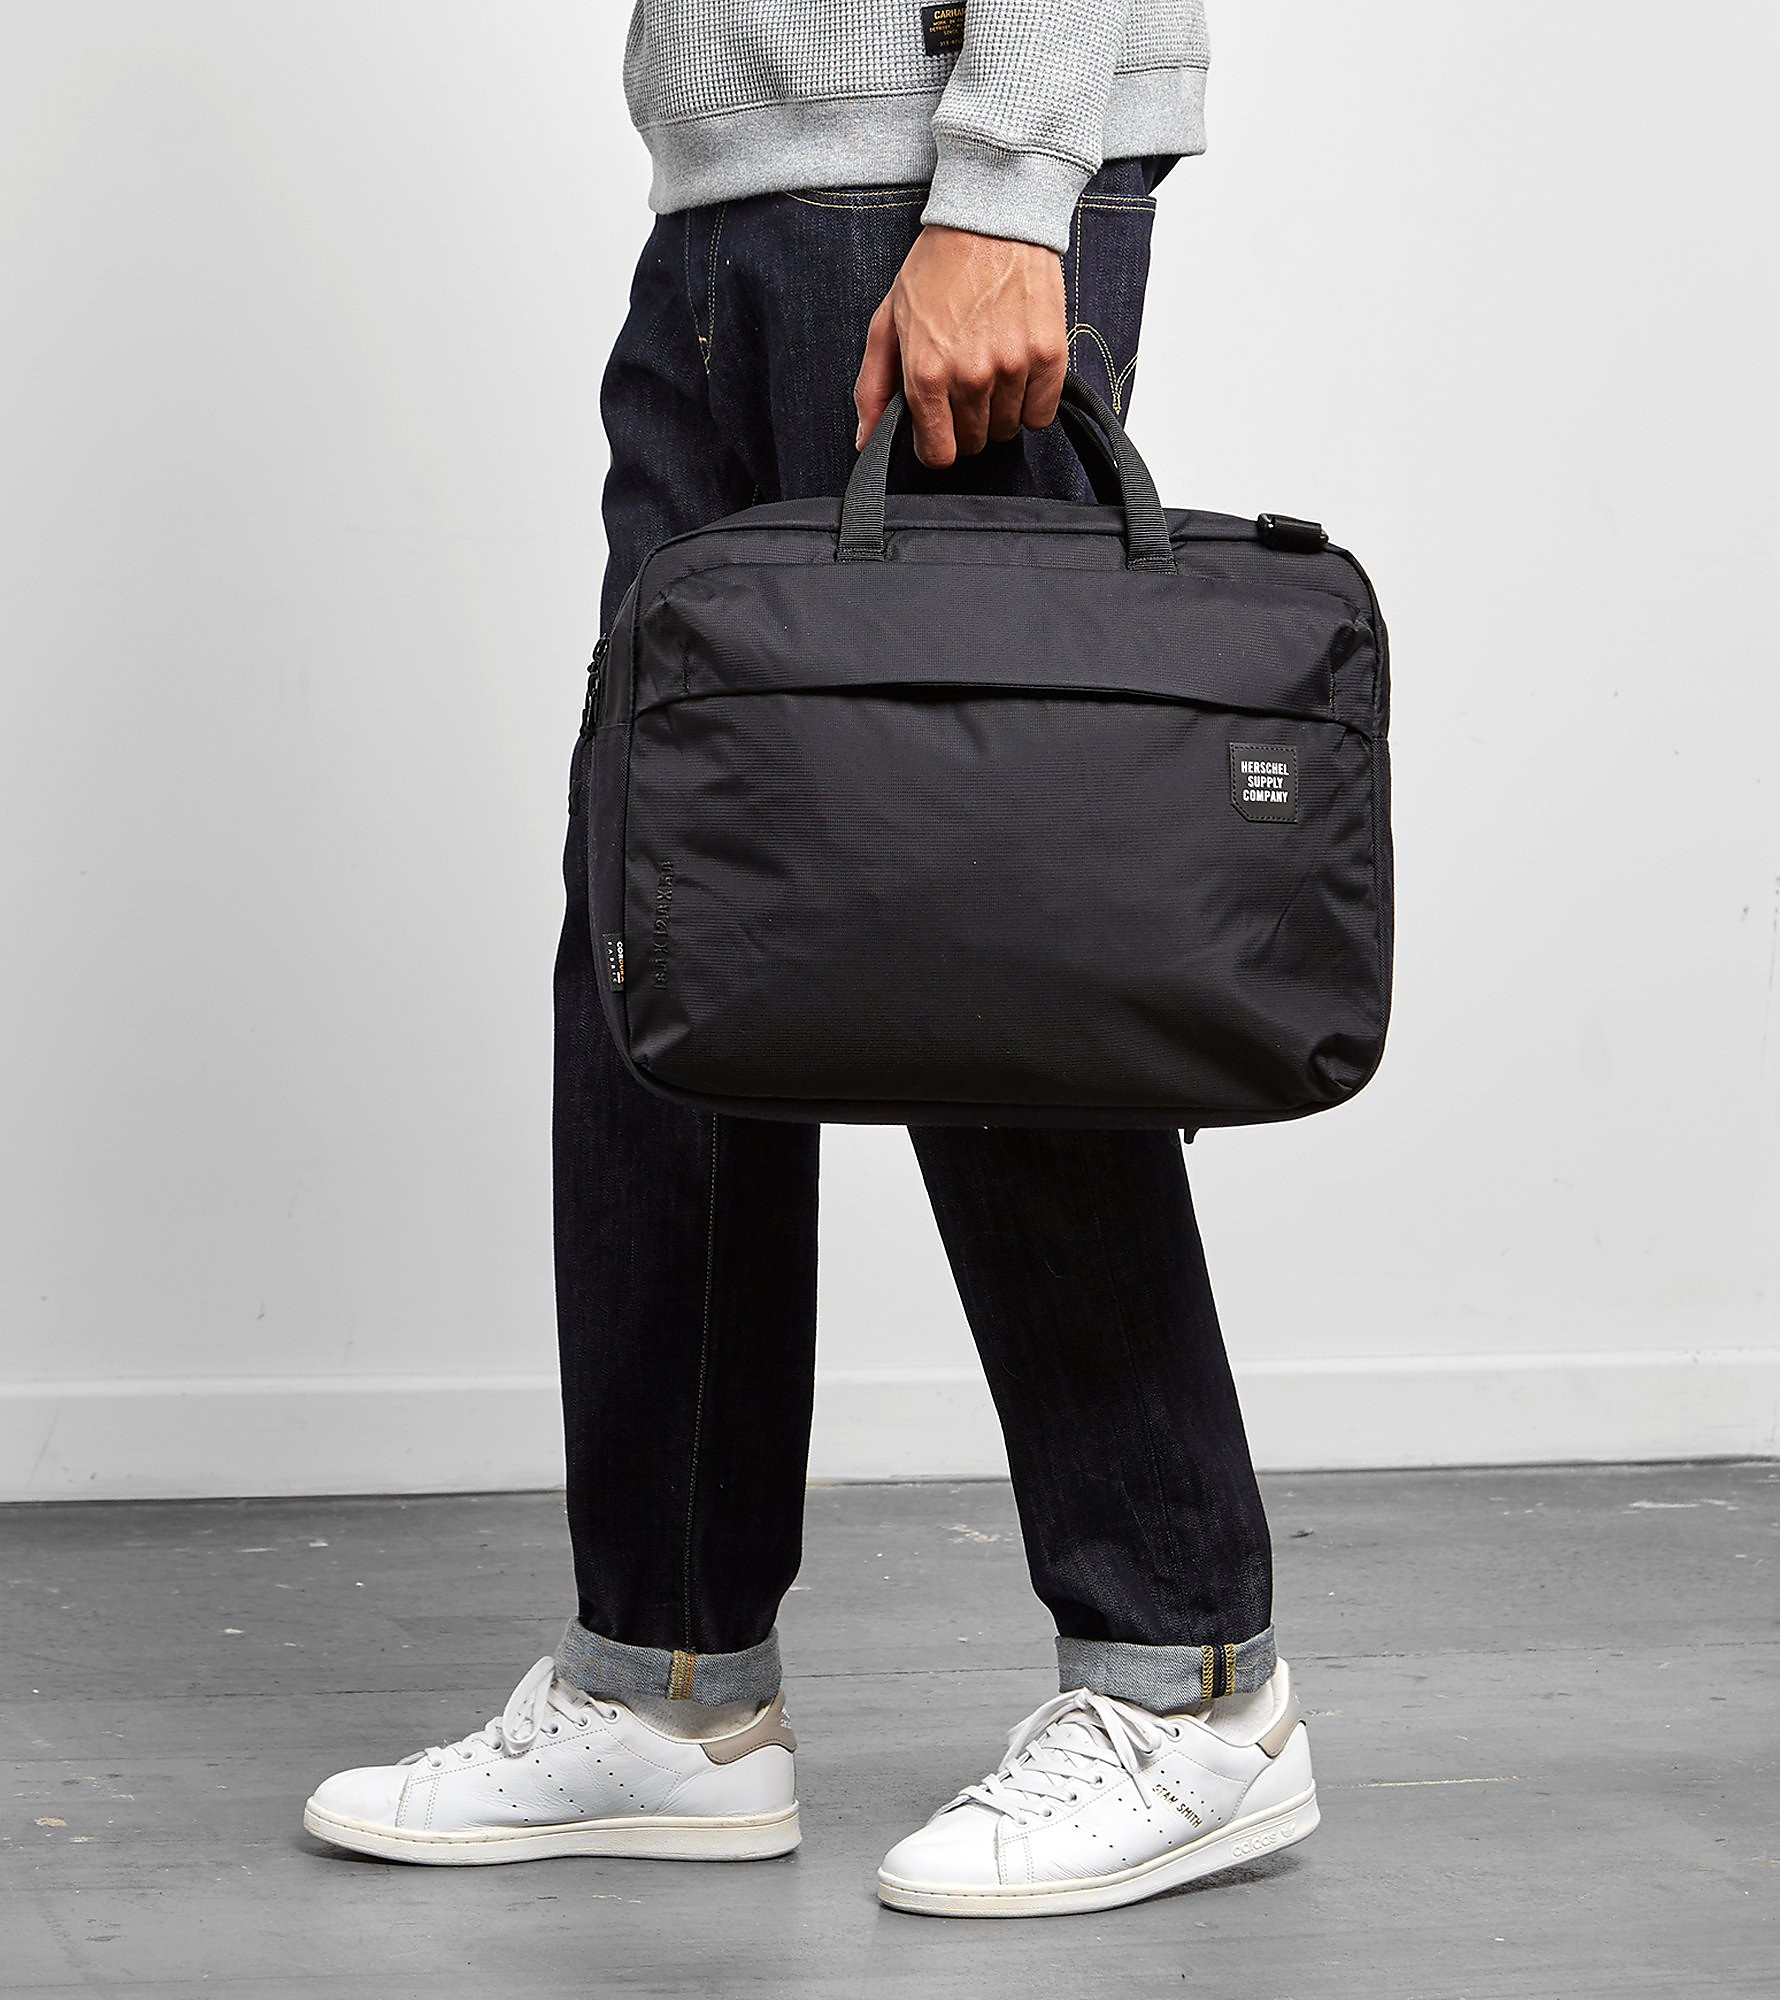 Herschel Supply Co Britannia Laptop Bag, Black